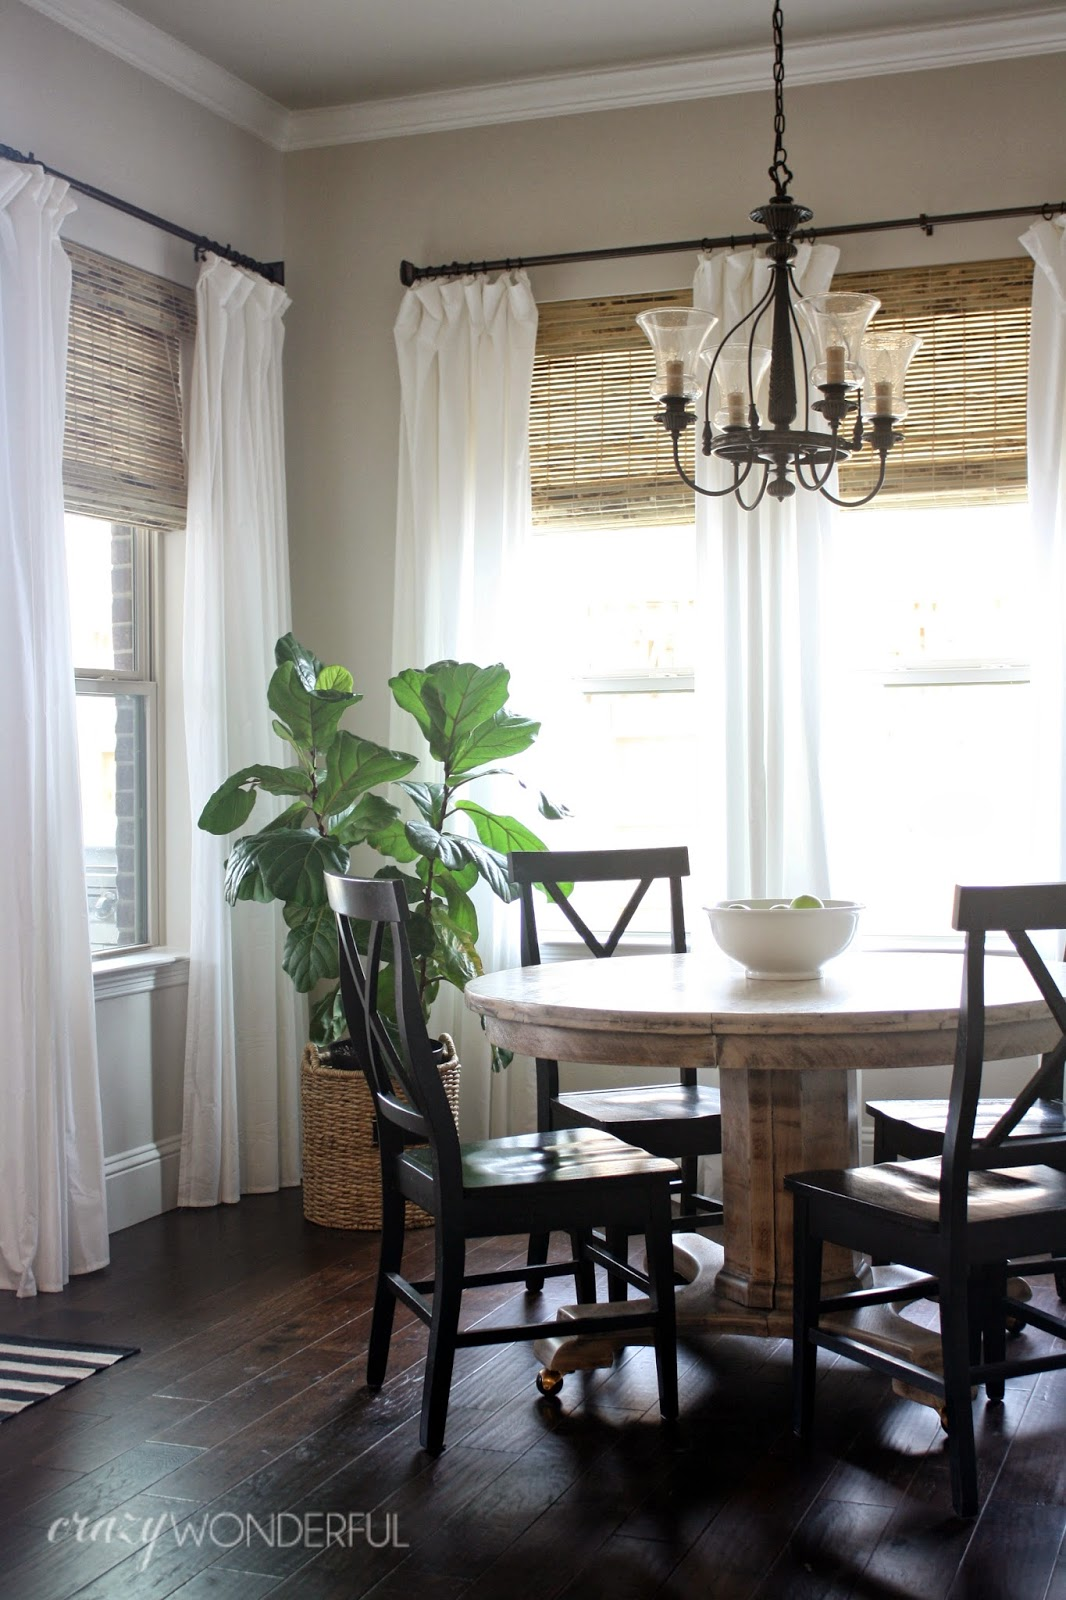 bamboo roman shades - Crazy Wonderful